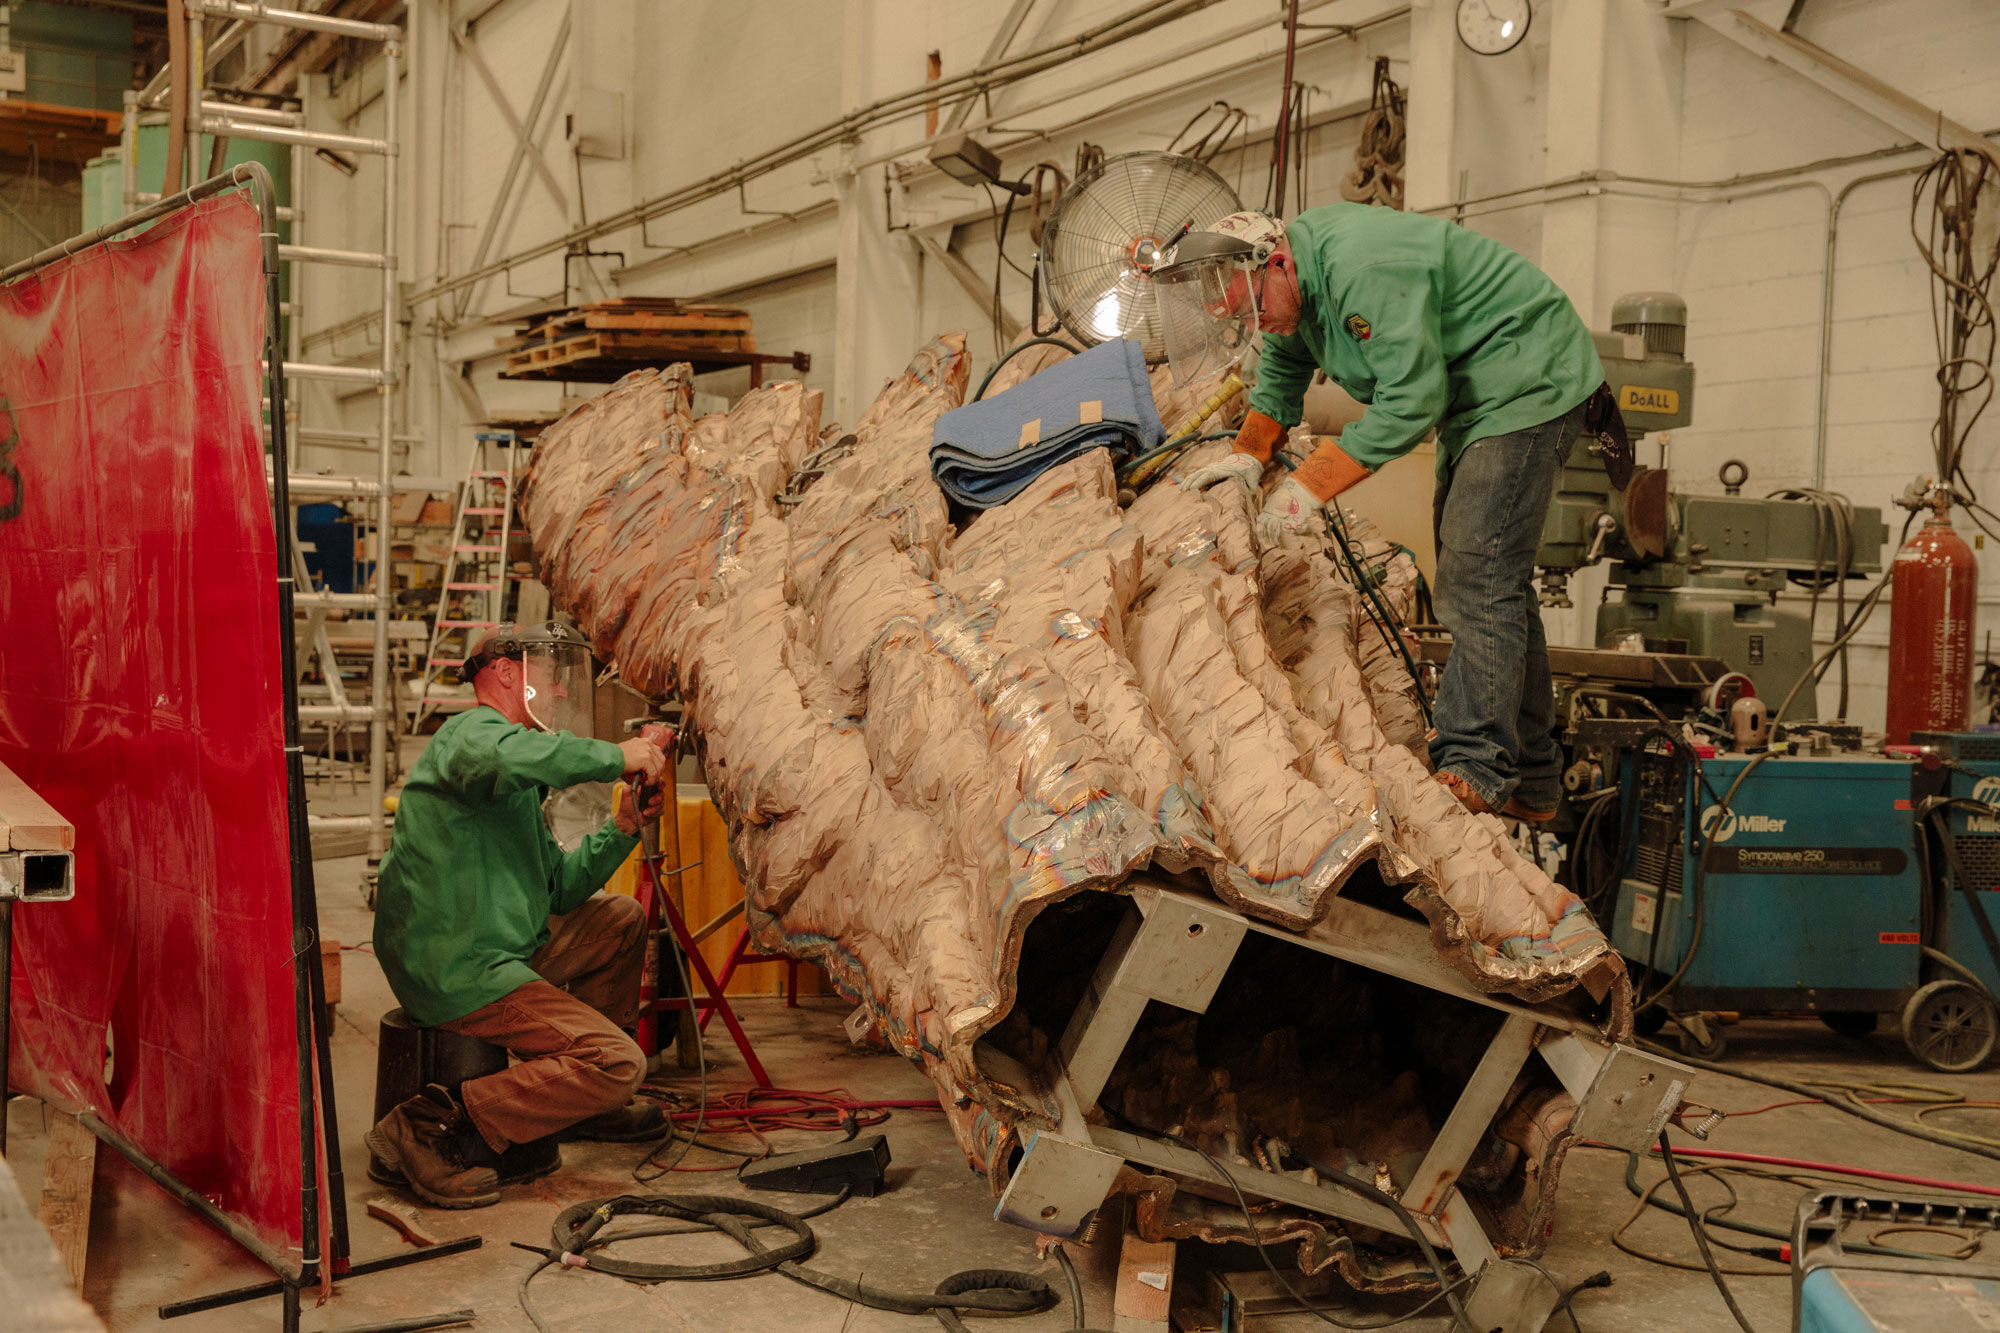 Craftsmen welding and finishing bronze casting for a work by Ursula von Rydingsvard. Photo by Ricky Rhodes for Artsy.